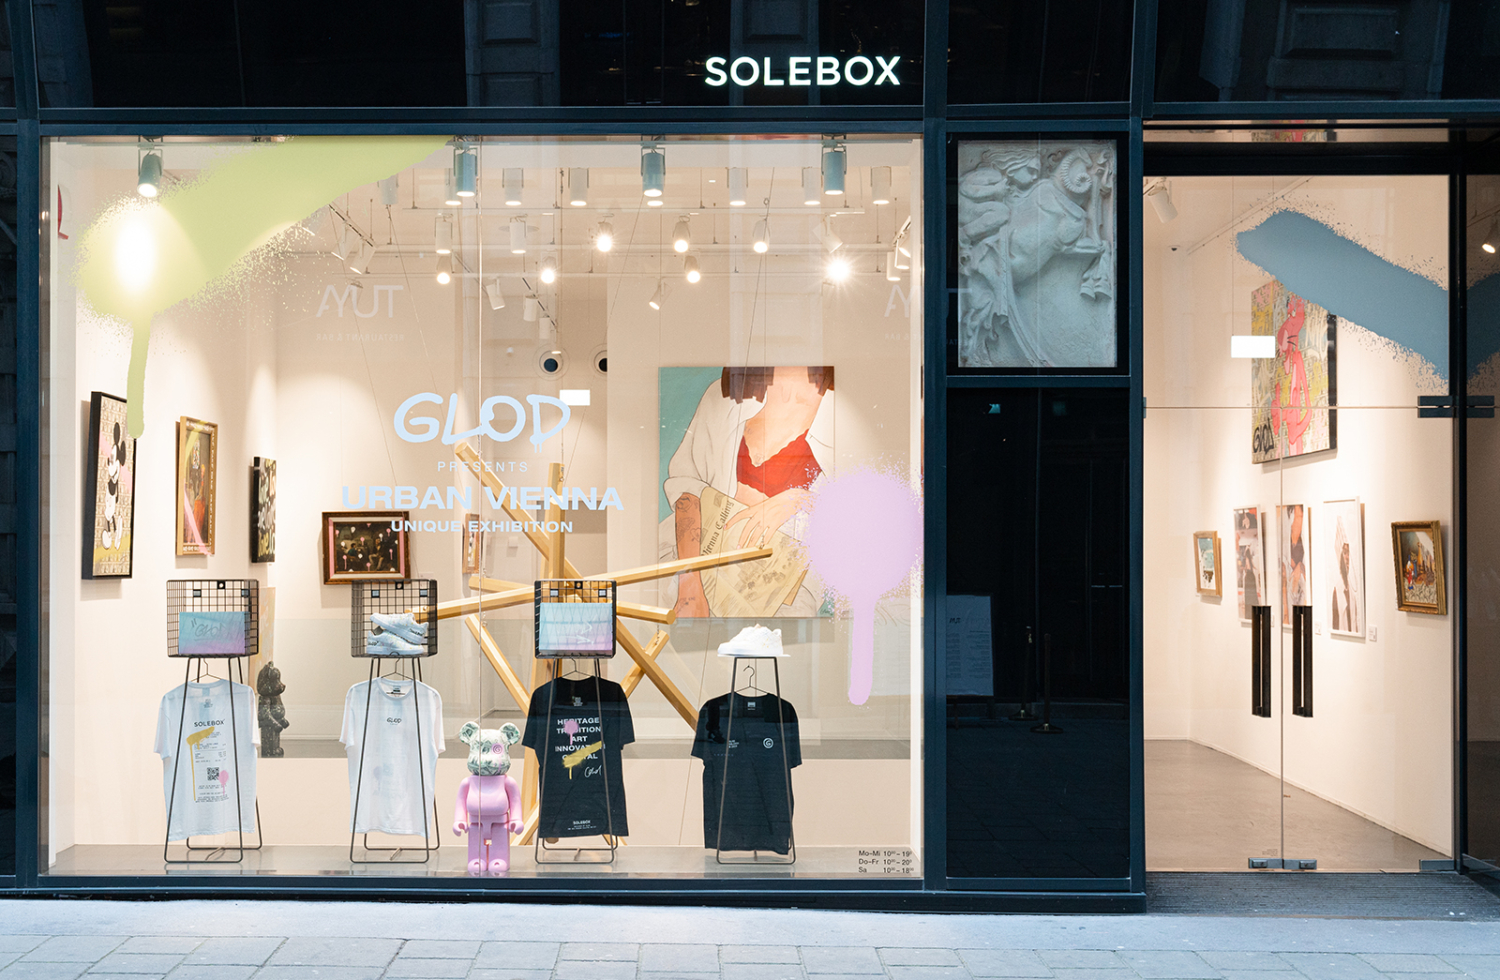 Glod Art - Exhibition and Cooperation with Solebox Store Art Space in Vienna, 2020